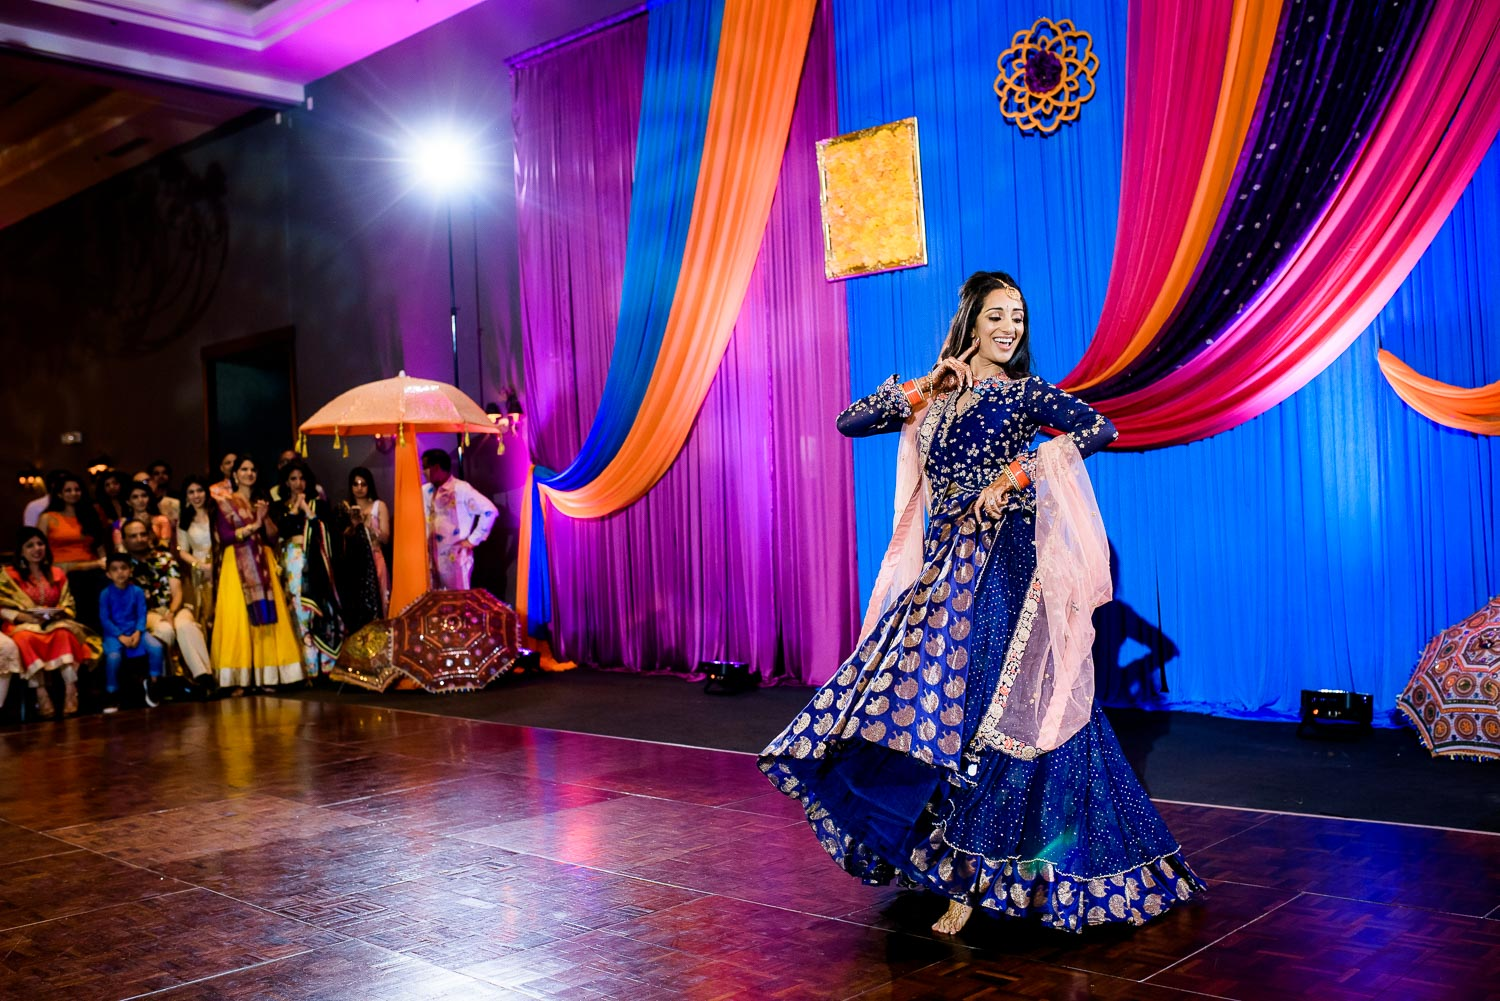 The bride dances during an Indian wedding sangeet at Stonegate Banquets in Hoffman Estates.